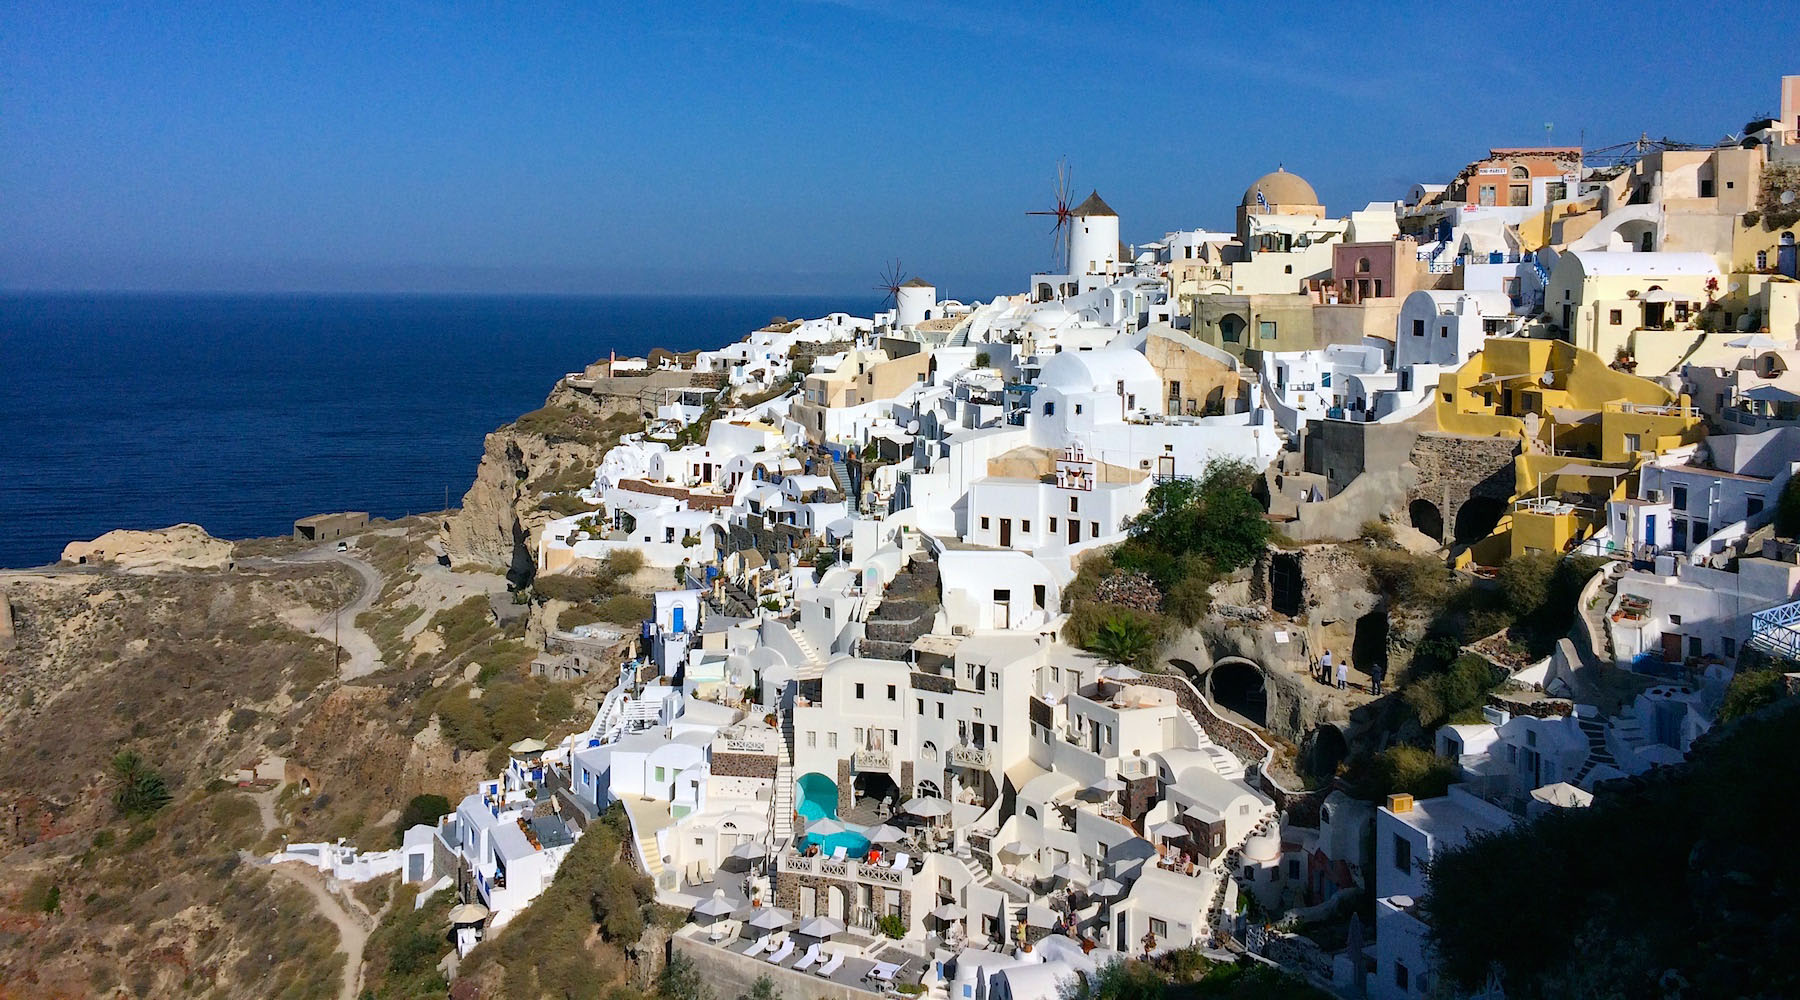 Cruising to Dreamy Santorini with the Azamara Quest